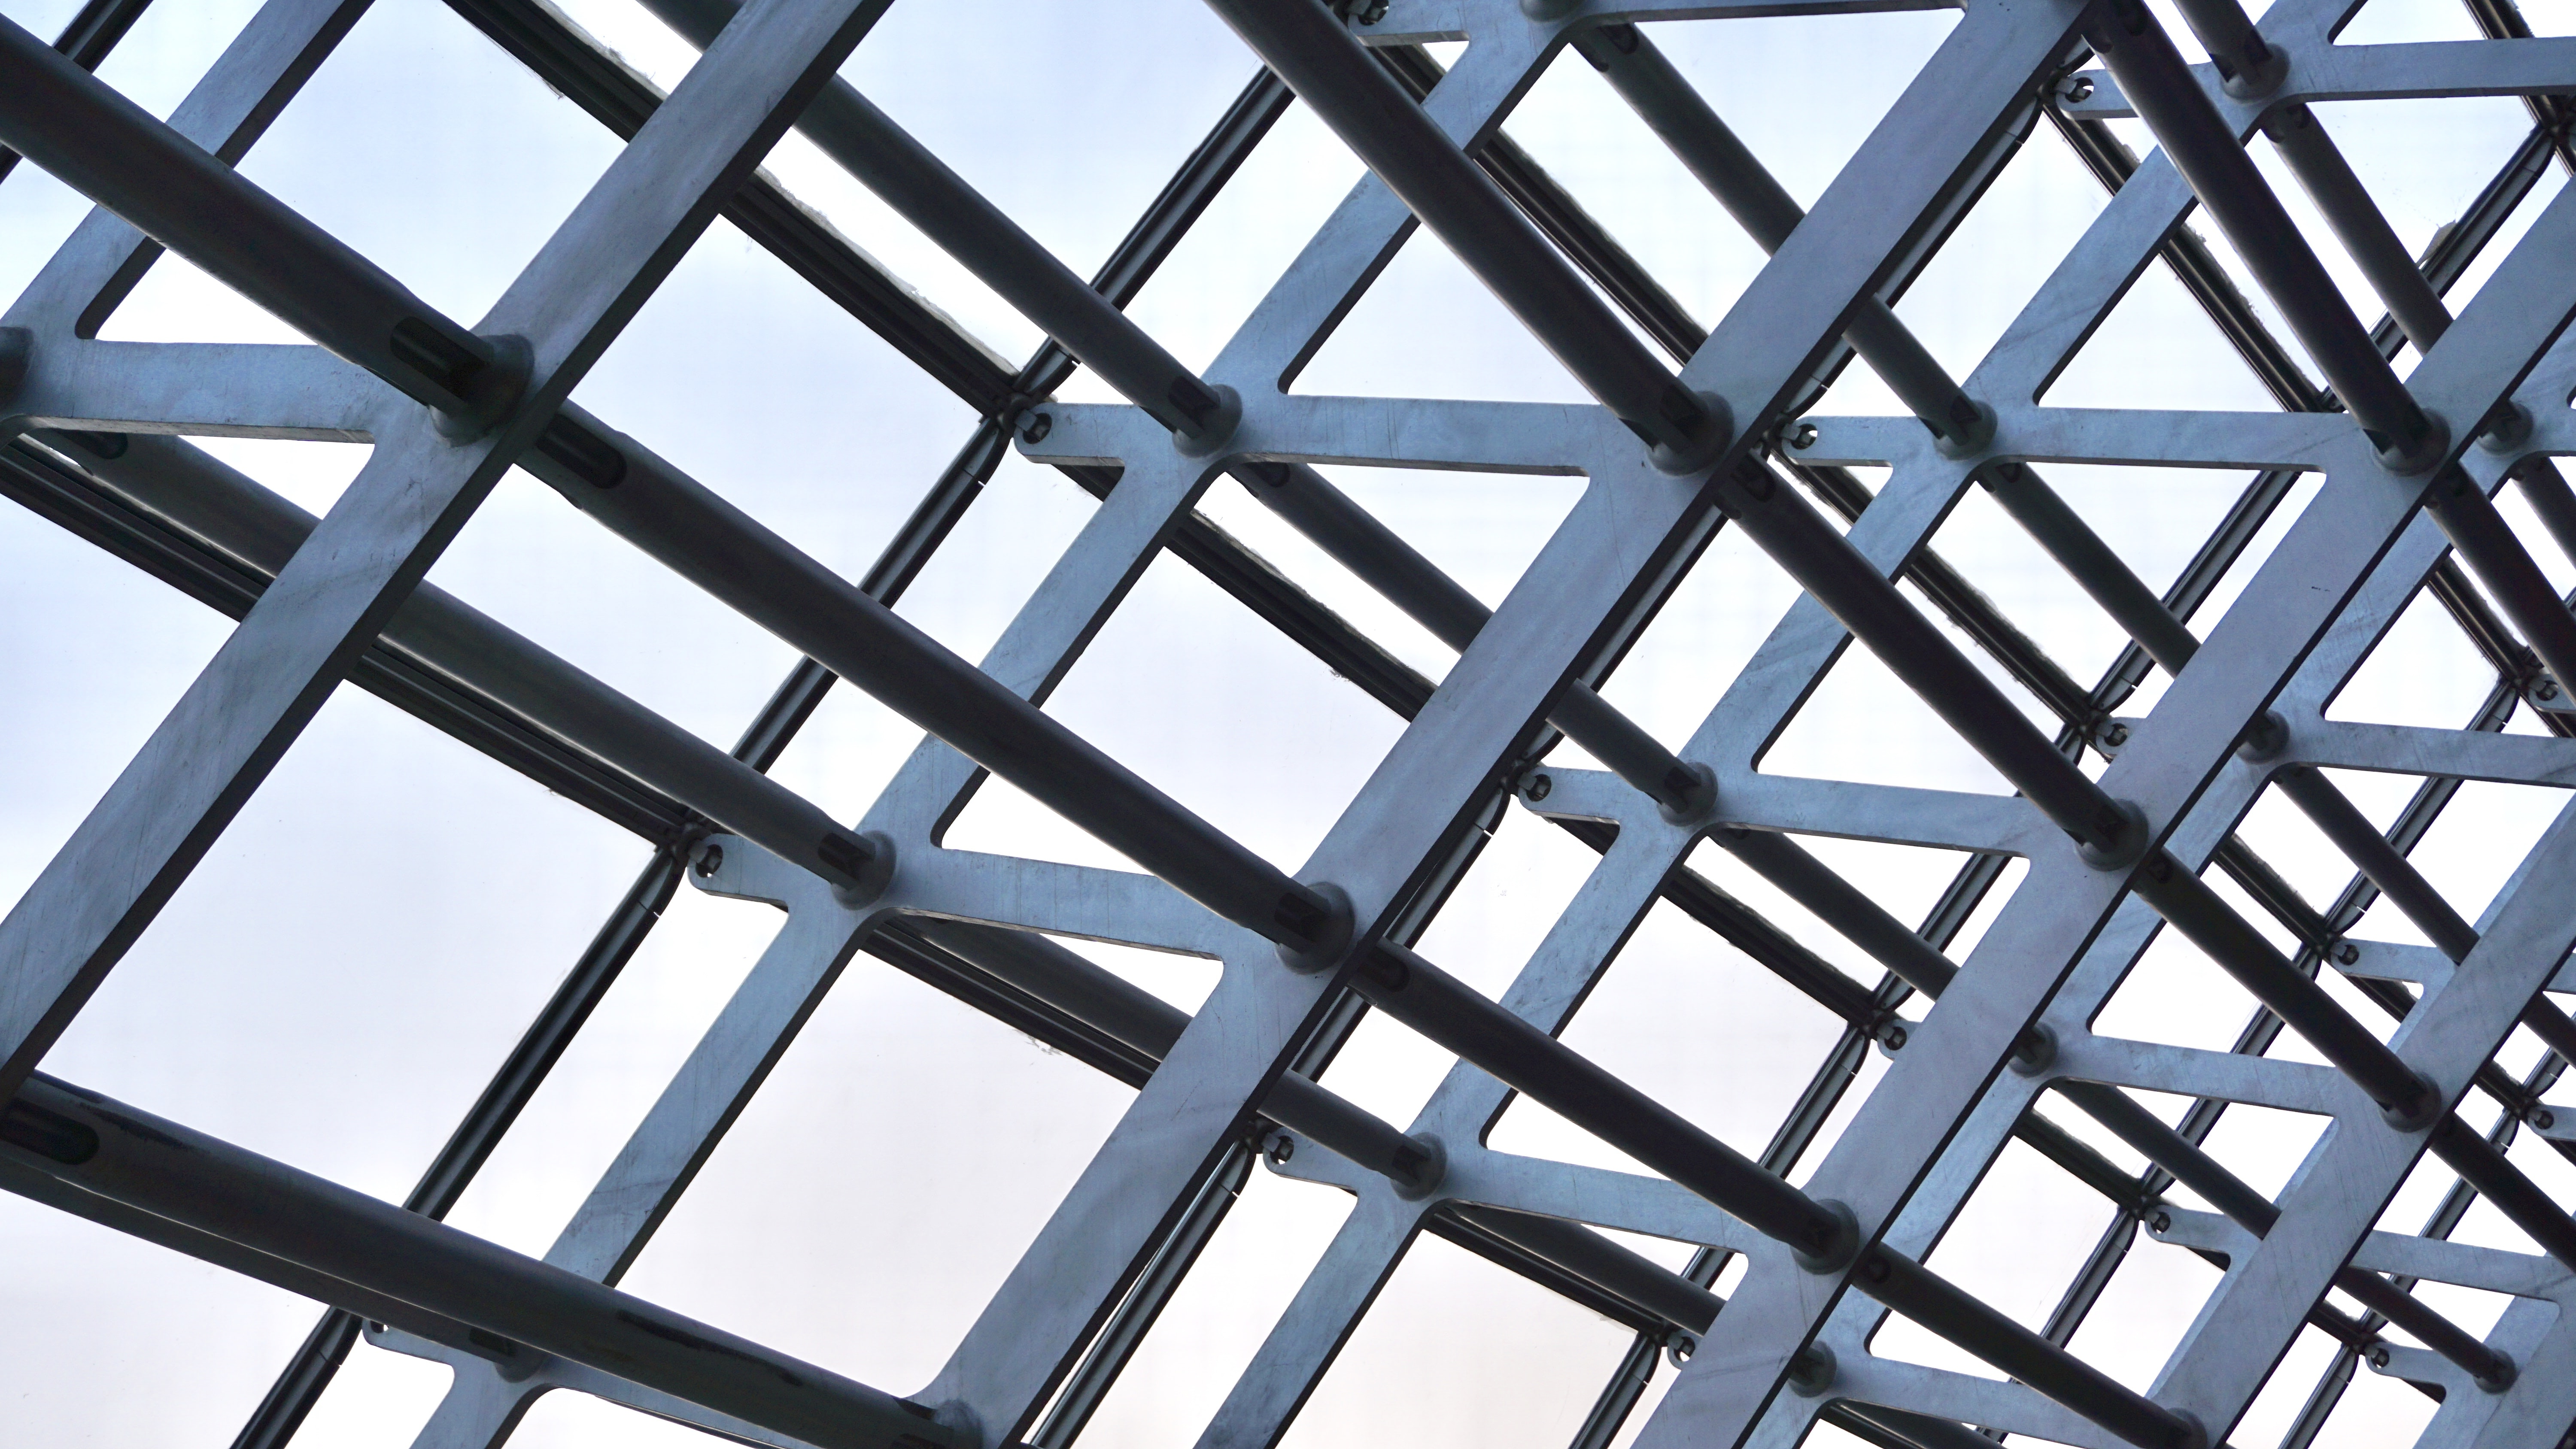 photo of gray metal structure during daytime